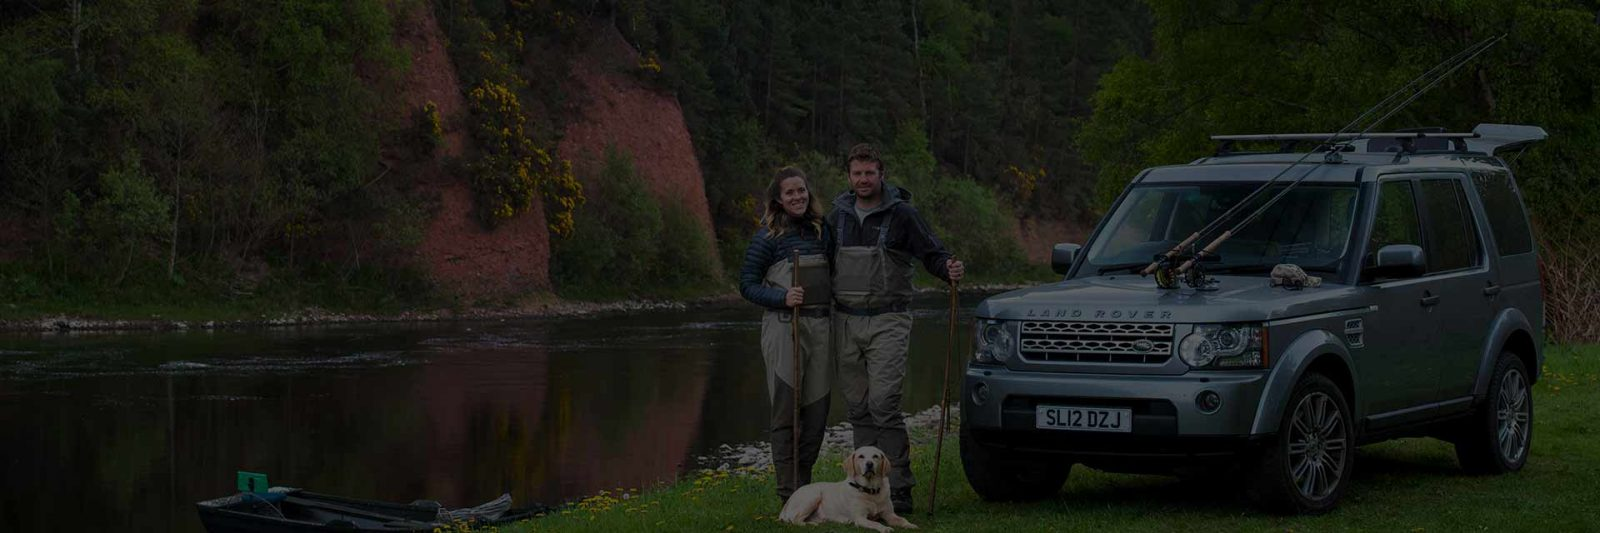 salmon fishing, river spey, spey casting, Gordon Castle, Brae Water, Fly Fishing, Scotland